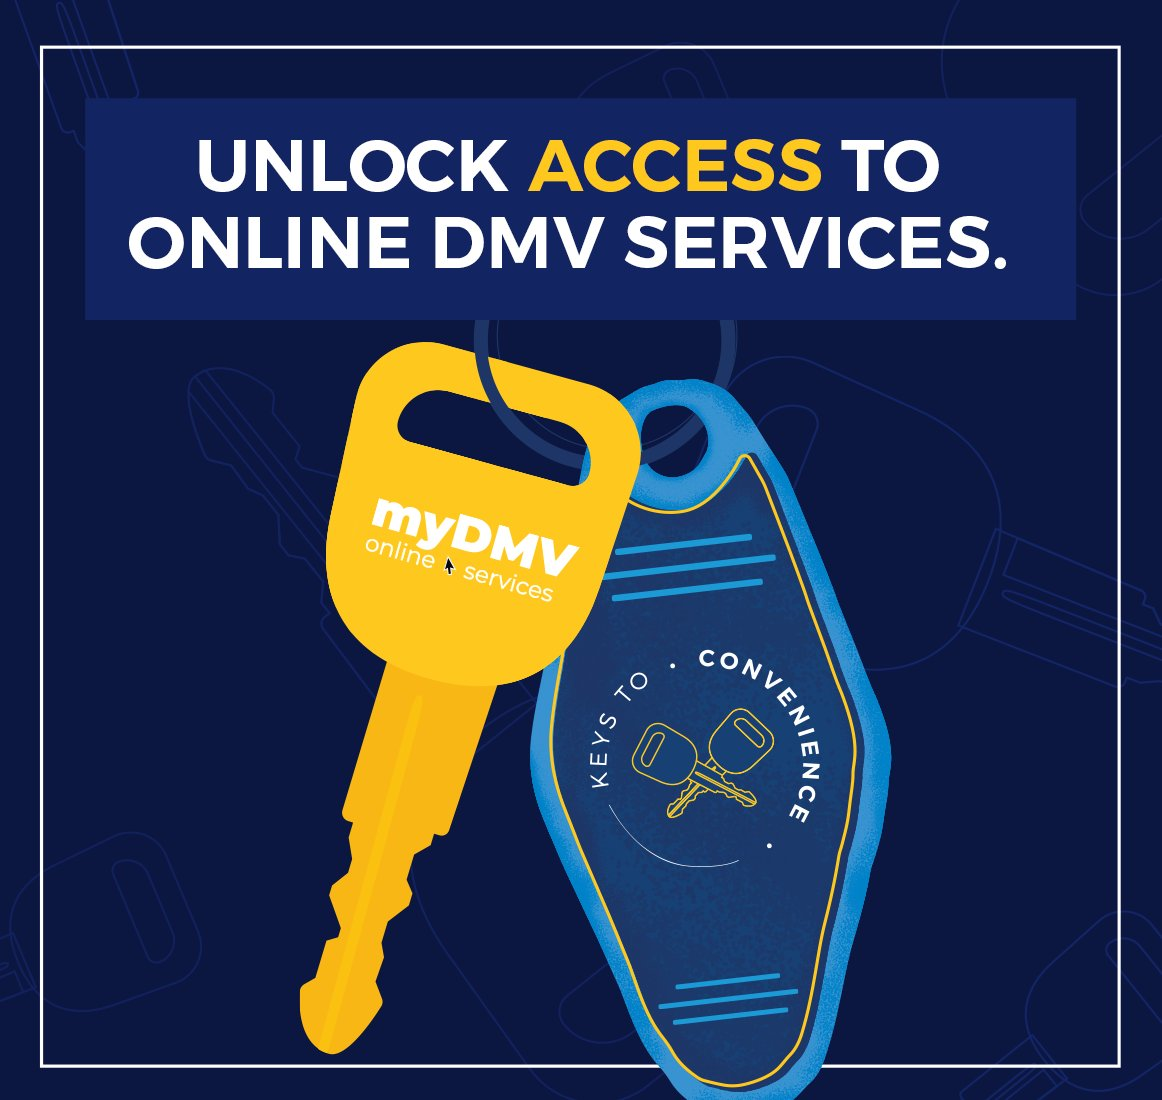 One of your keys to convenience is myDMV! Using myDMV allows you to complete services from home! To register and activate your account: . Please contact our myDMV Help Desk at DMVCustomerService@Delaware.gov or 302-744-2557